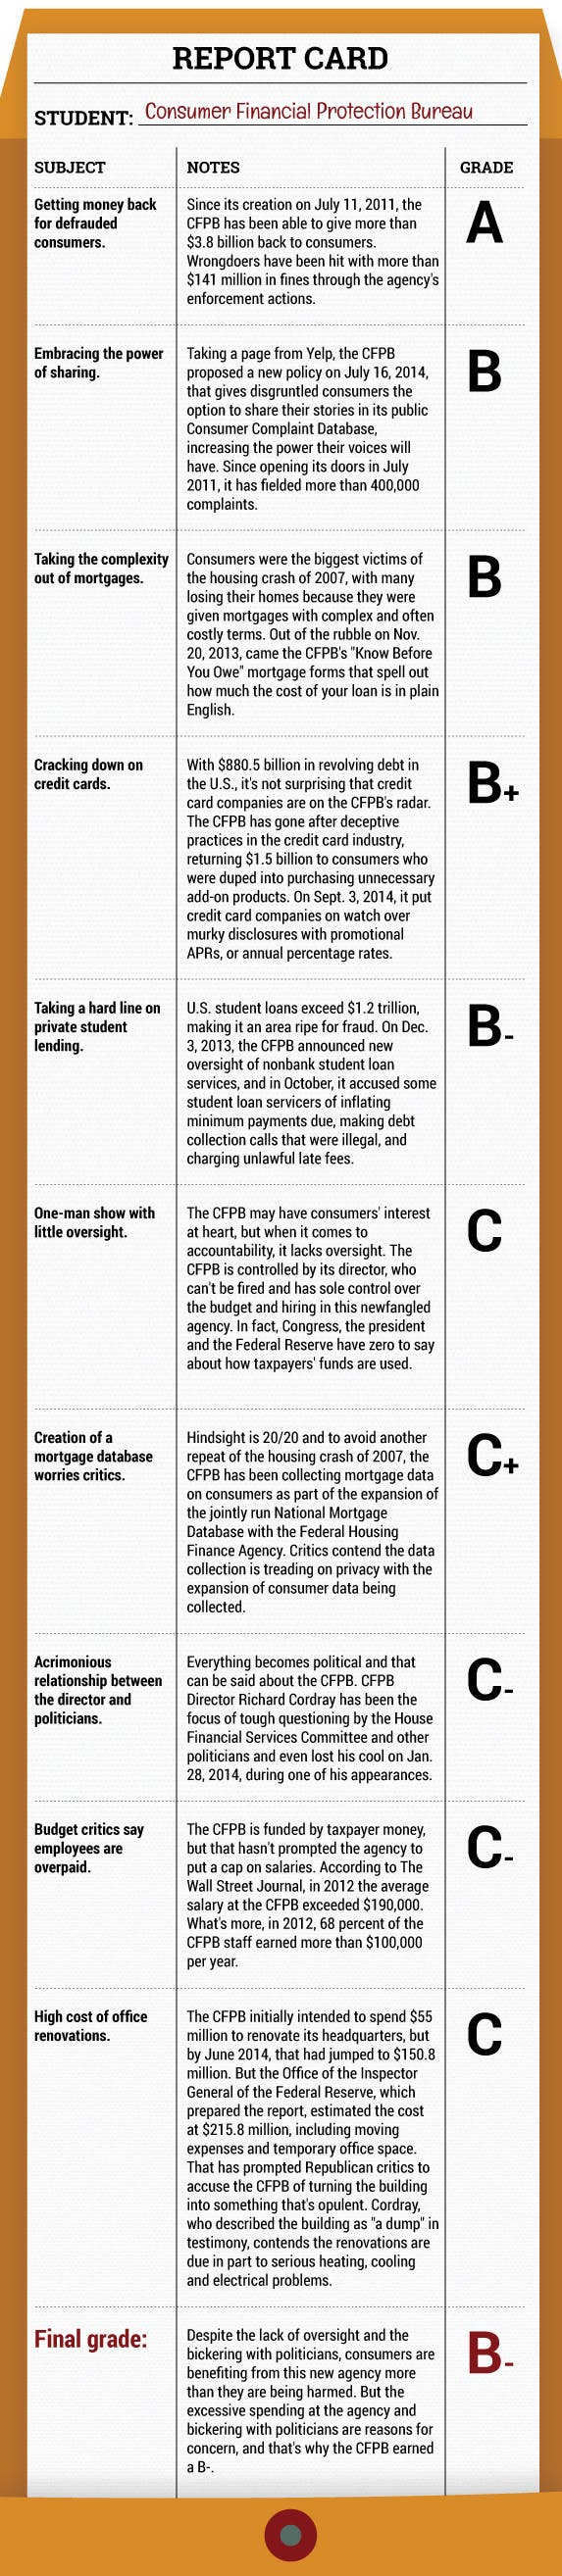 Report card for the CFPB